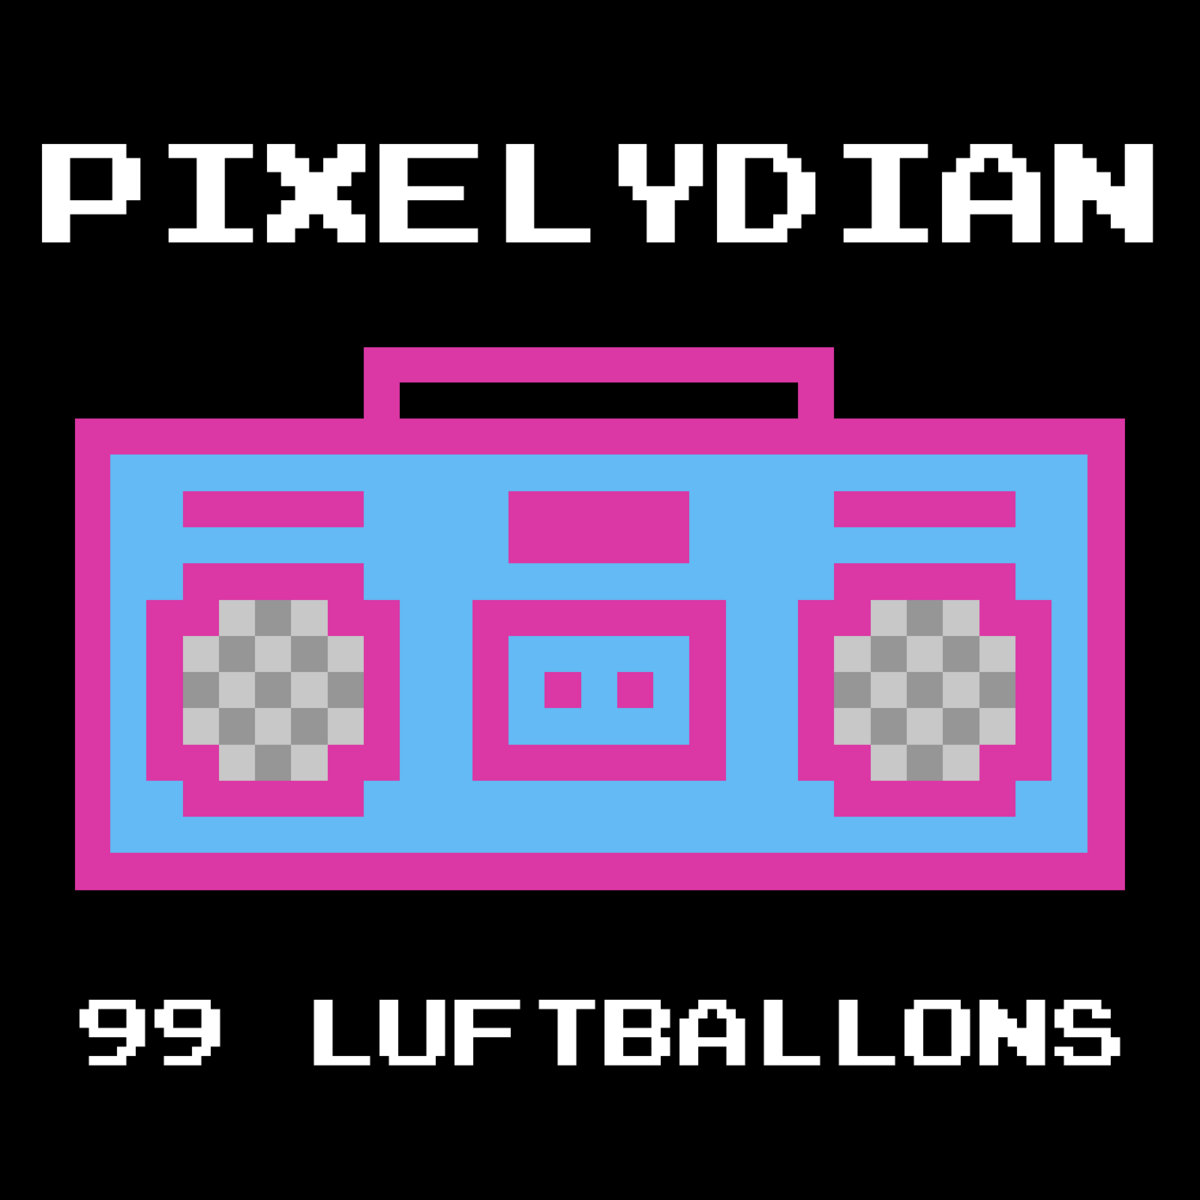 99 Luftballons Chiptune Cover